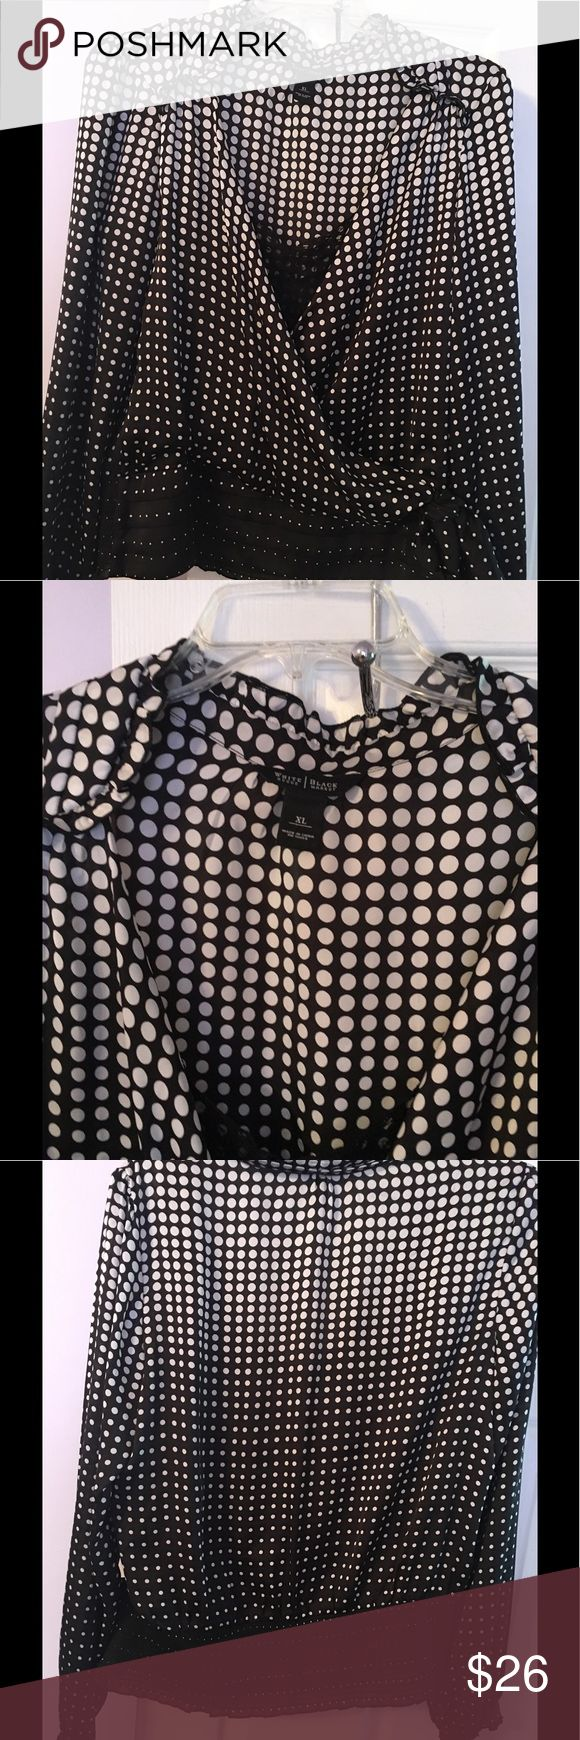 White House Black Market Black White Polka Dot White House Black Market Black White Polka Dot Top Lace Shell Flattering cotton stretch shapes a structured silhouette Notched collar, Long sleeves with button cuffs White House Black Market Tops Blouses